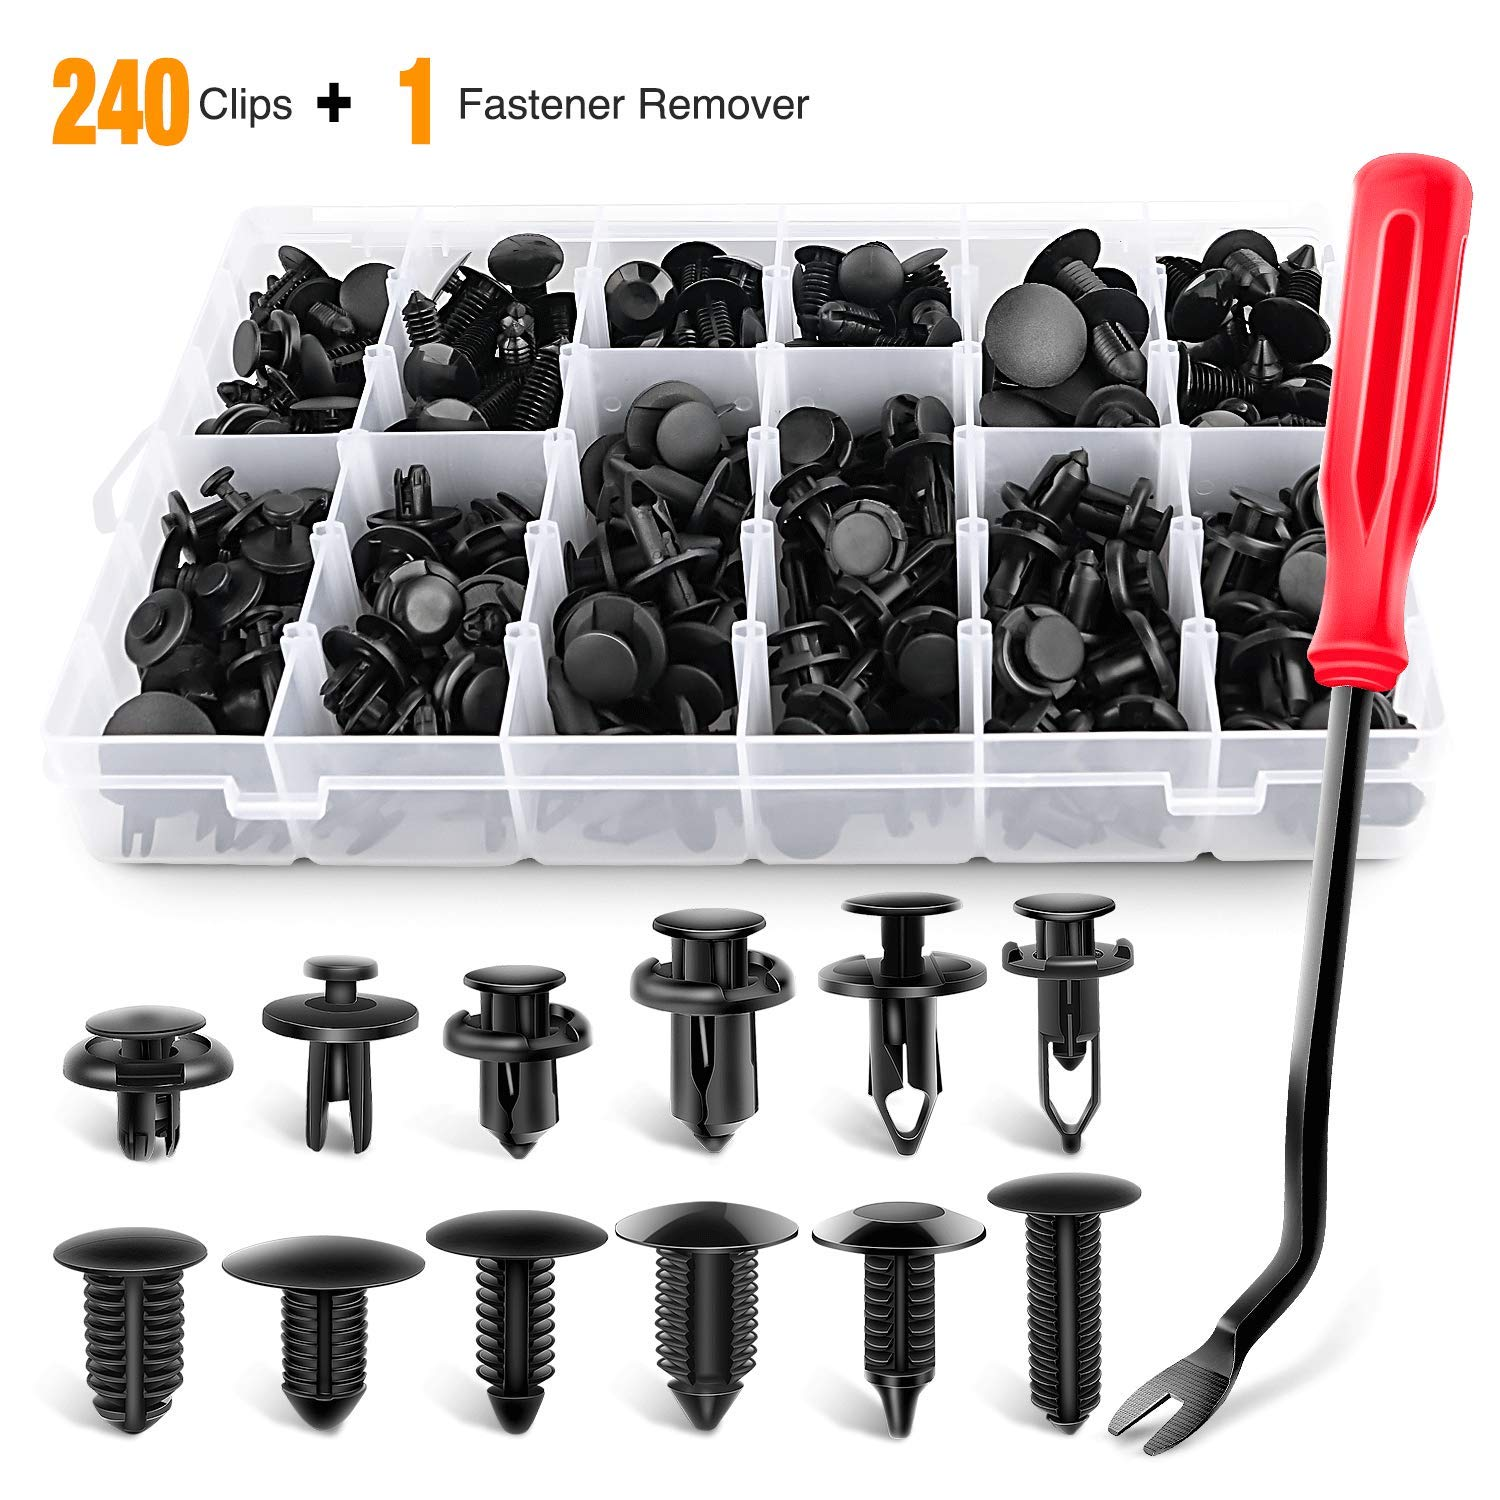 GOOACC GRC-33 240PCS Bumper Car Plastic Fasteners Retainer Kit Most Popular Sizes Auto Push Pin Rivets Set-Door Trim Panel Fender Clips for GM Ford Toyota Honda Chrysler